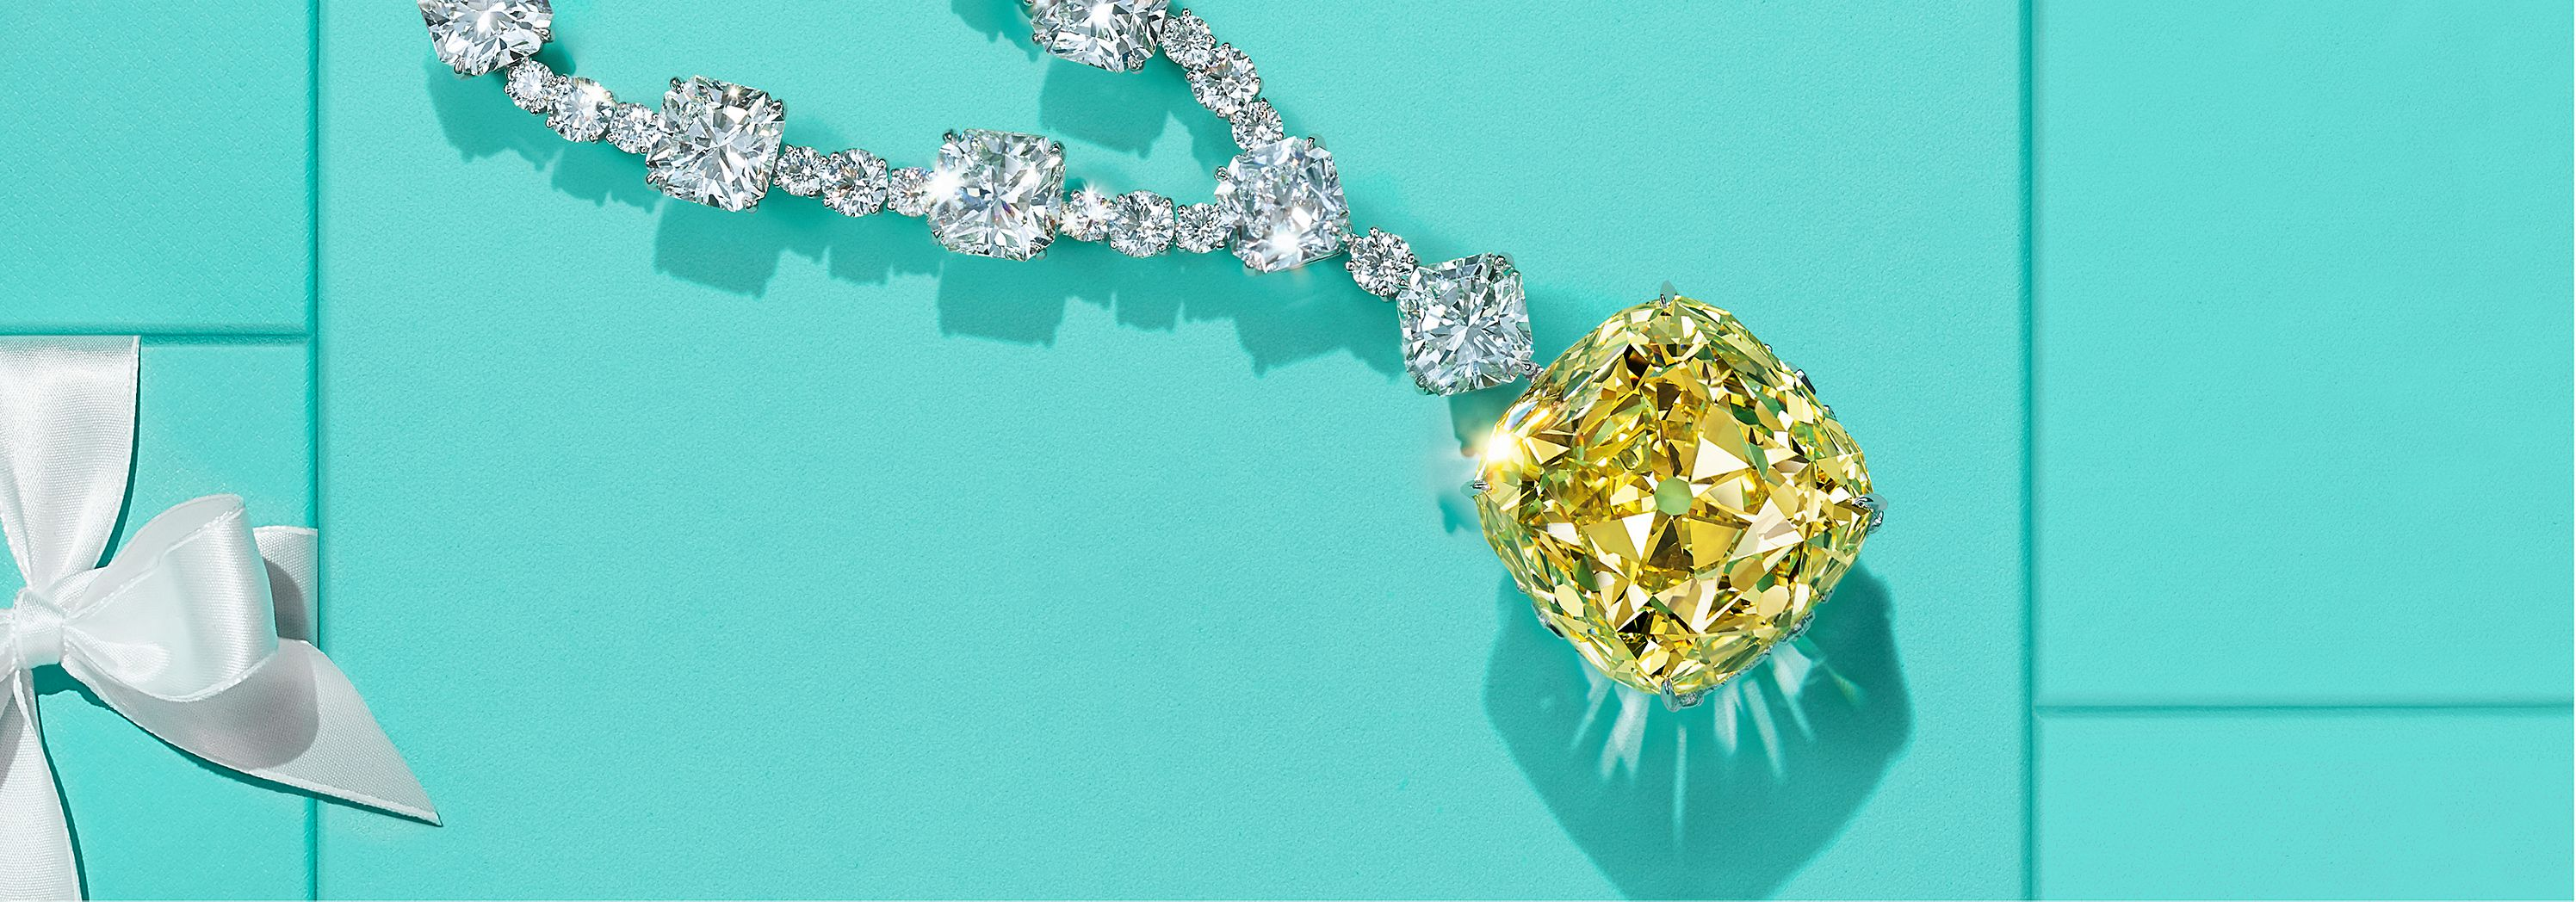 Tiffany & Co  Official | Luxury Jewelry, Gifts & Accessories Since 1837